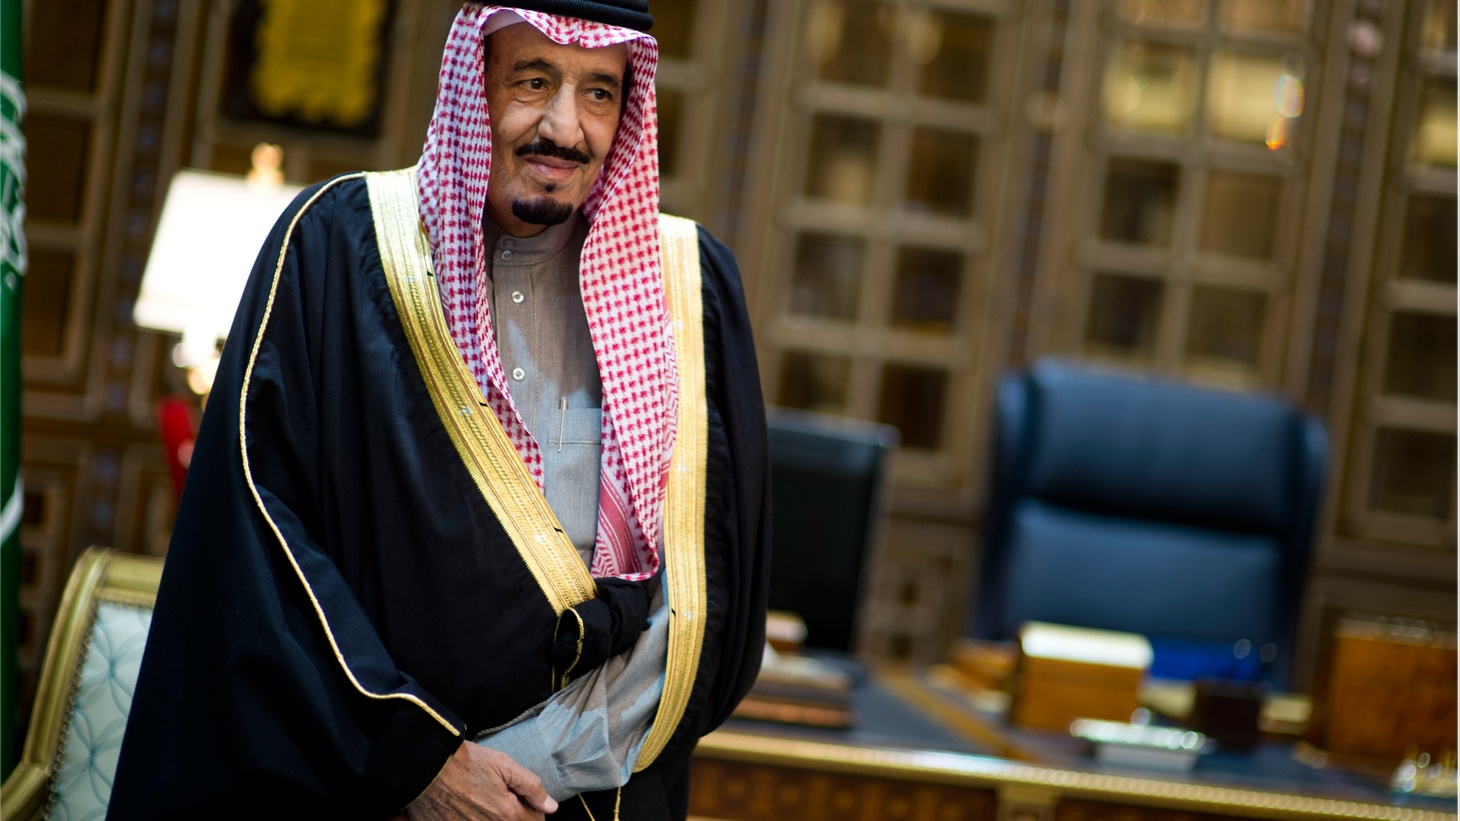 The day after the death of Saudi Arabia's King Abdullah, we look at upheaval in the Middle East. What's the latest from the ground in Saudi Arabia and in Yemen? Also, how and why are Western women getting recruited into Islamic extremist groups like ISIS?